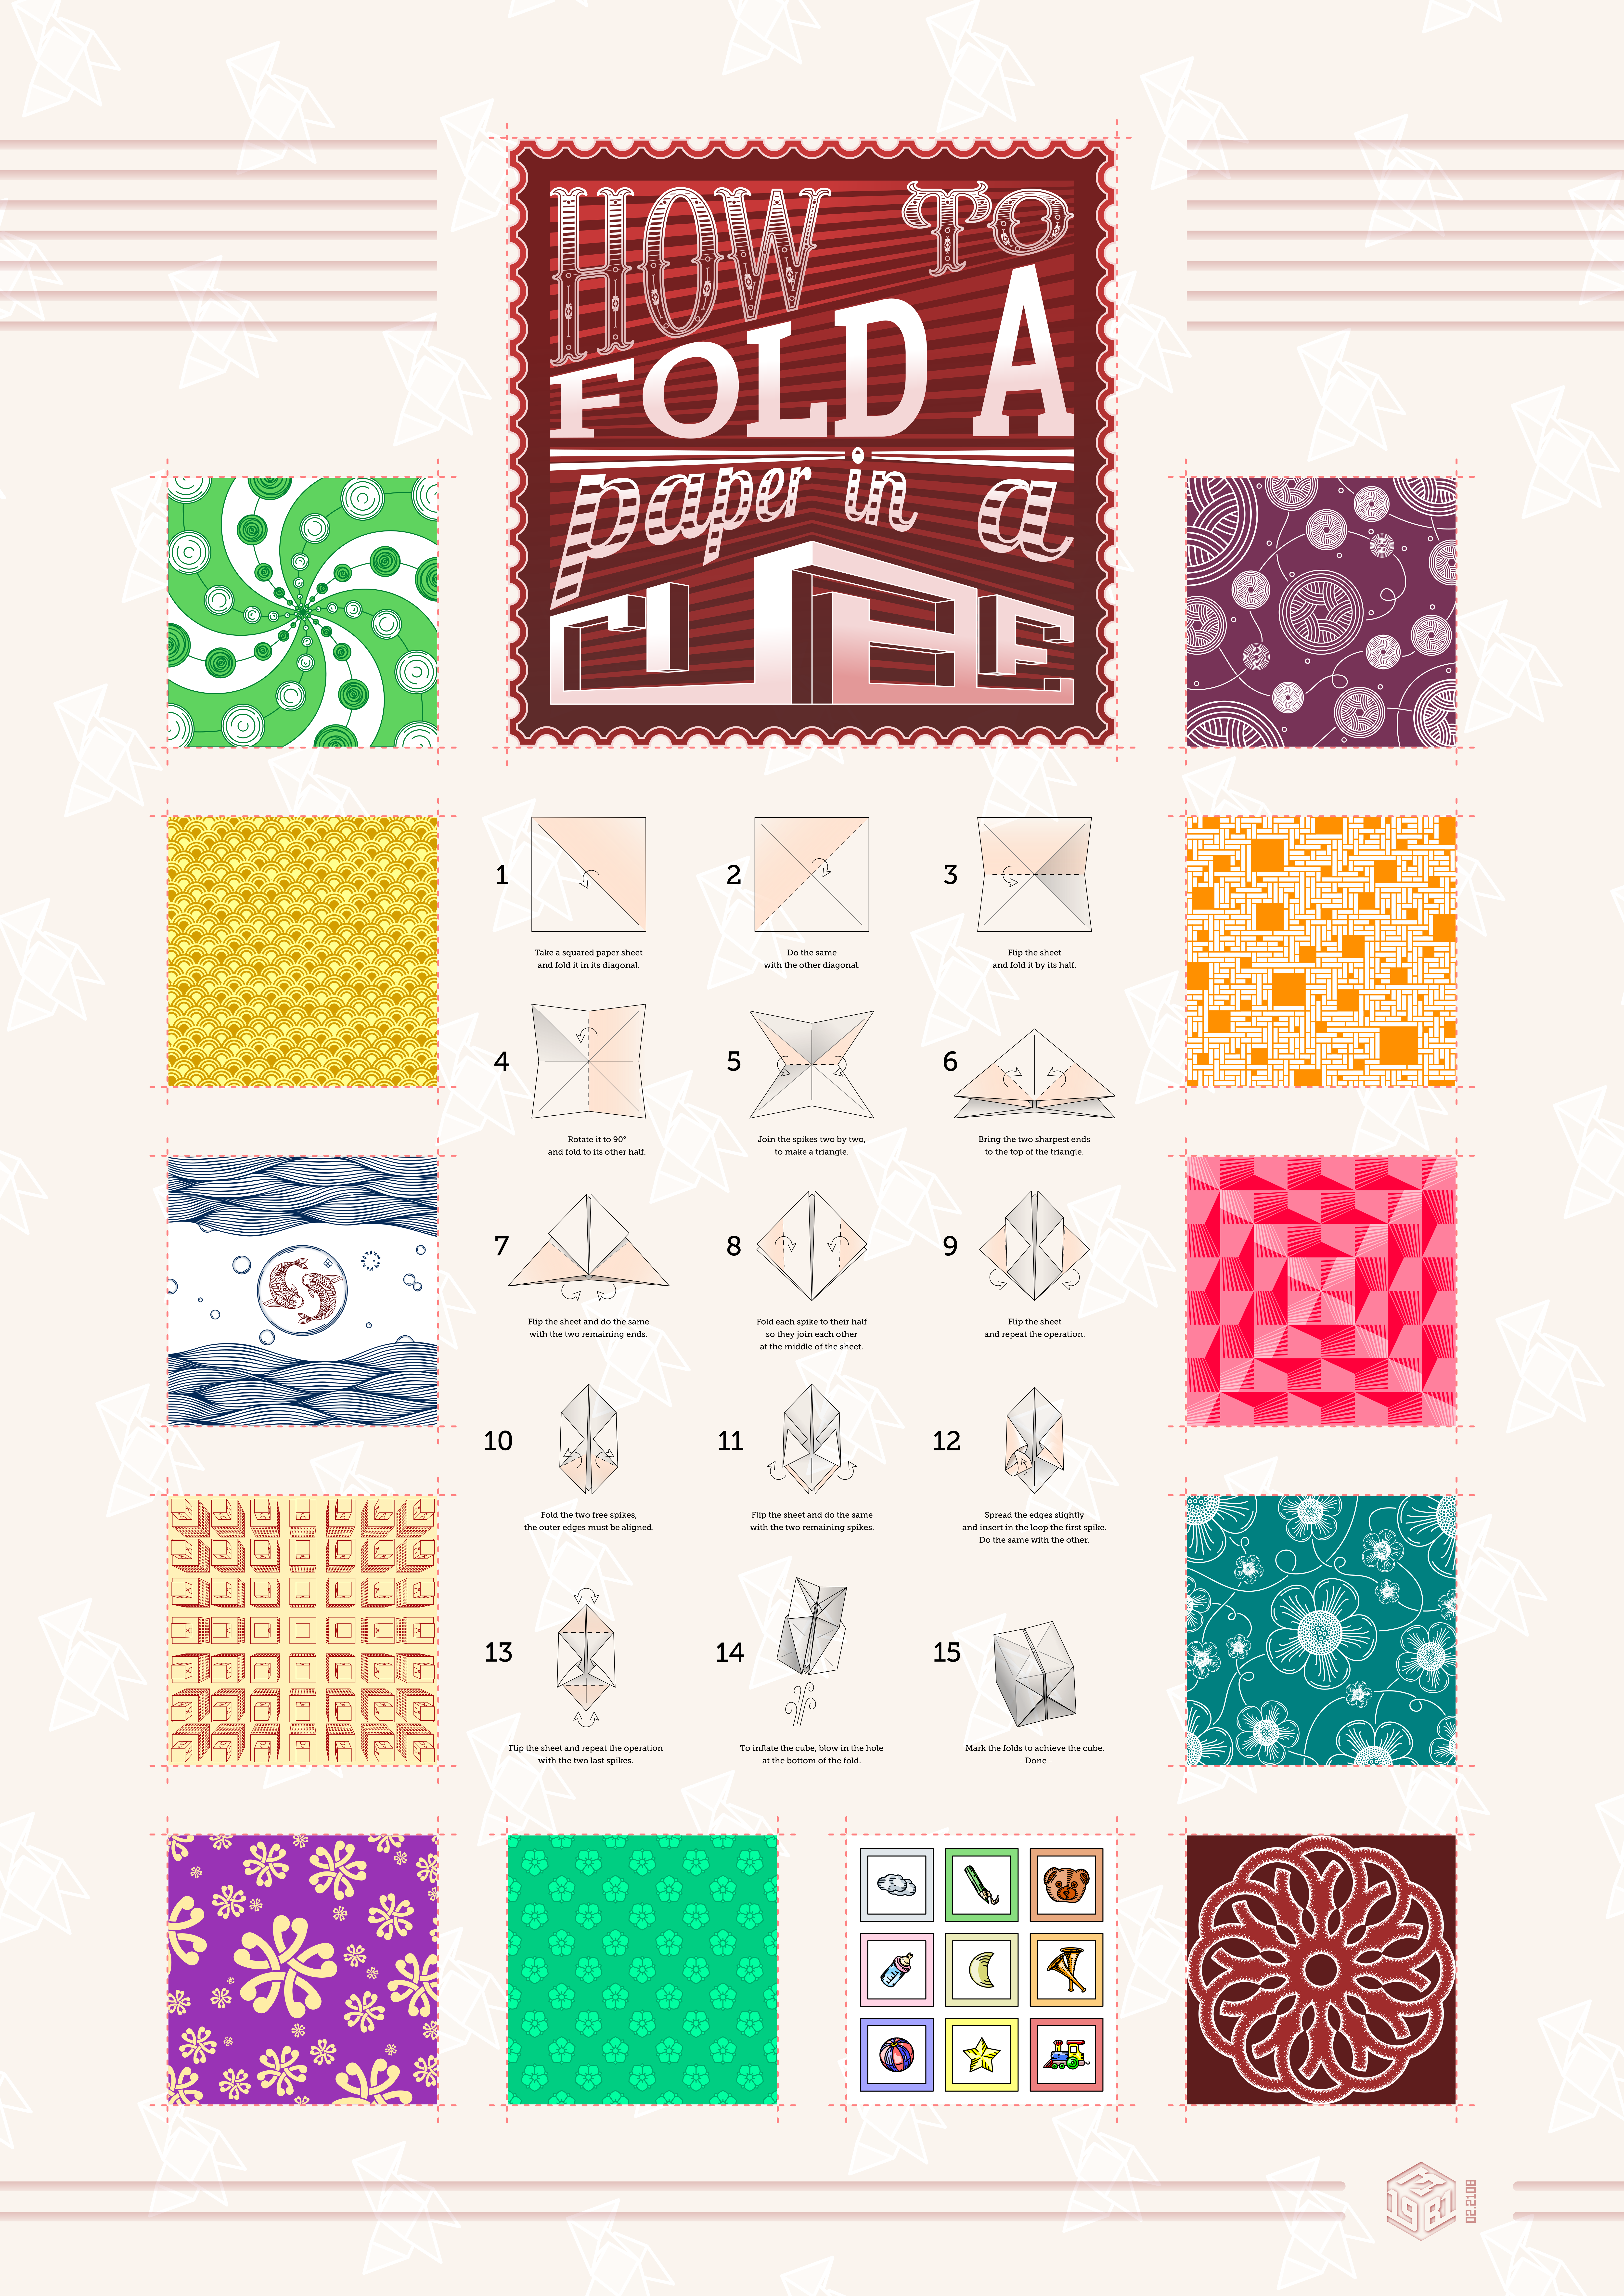 How to fold a paper in cube